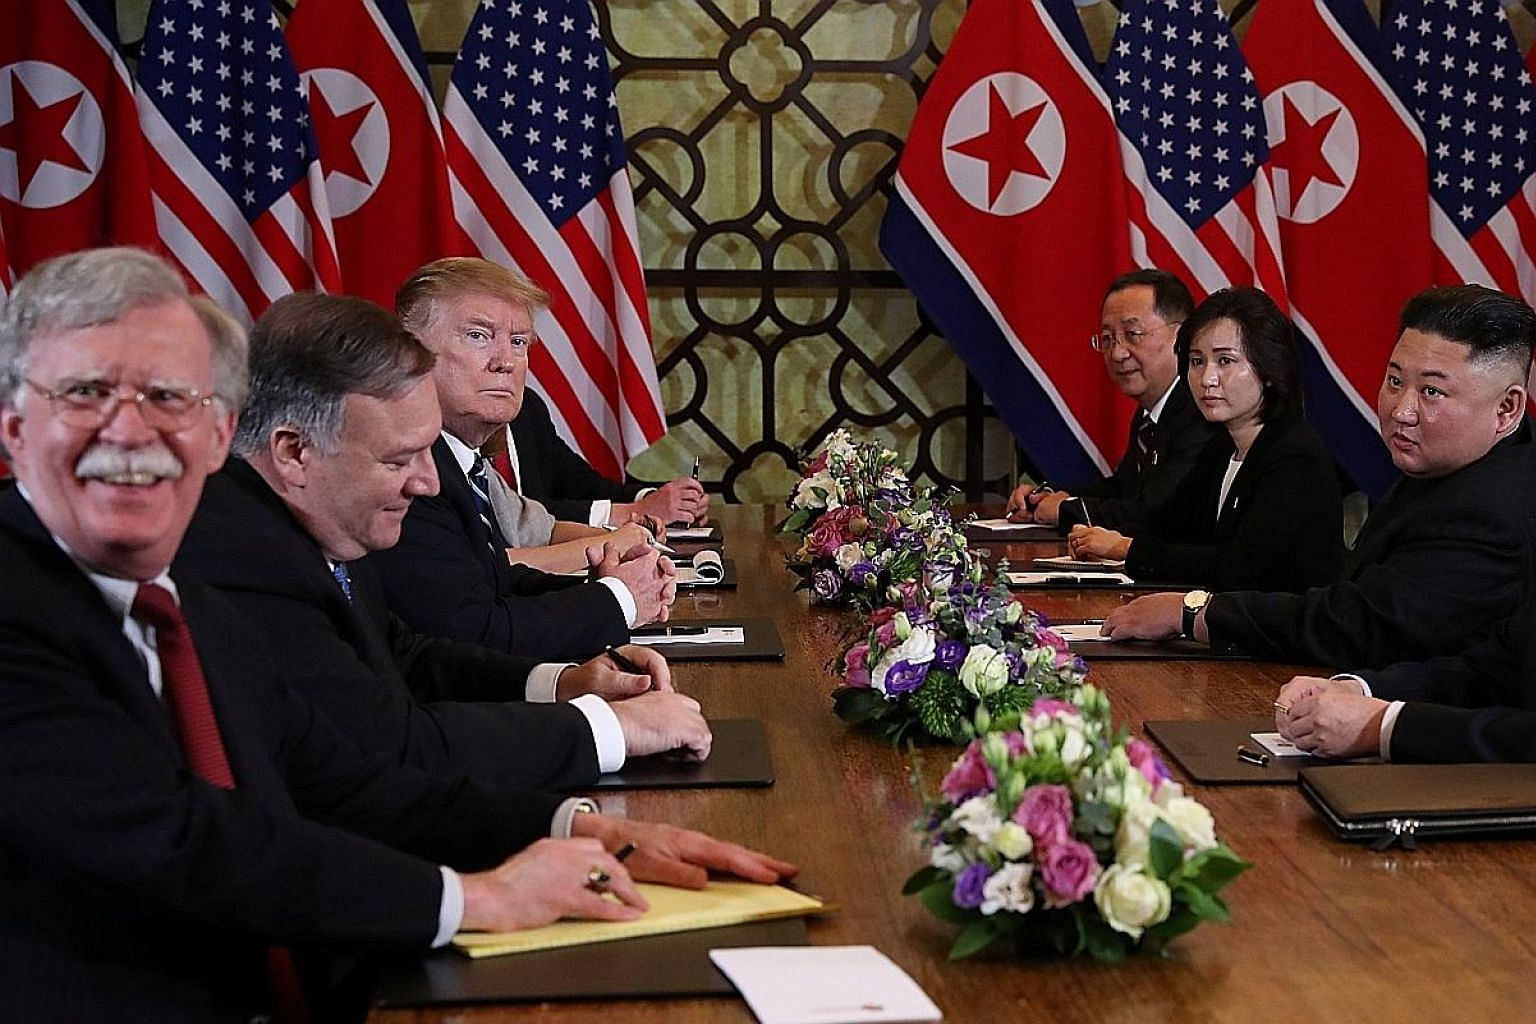 US President Donald Trump and North Korean leader Kim Jong Un with (from left) National Security Adviser John Bolton, US State Secretary Mike Pompeo and North Korean Foreign Minister Ri Yong Ho in Hanoi on Feb 28.